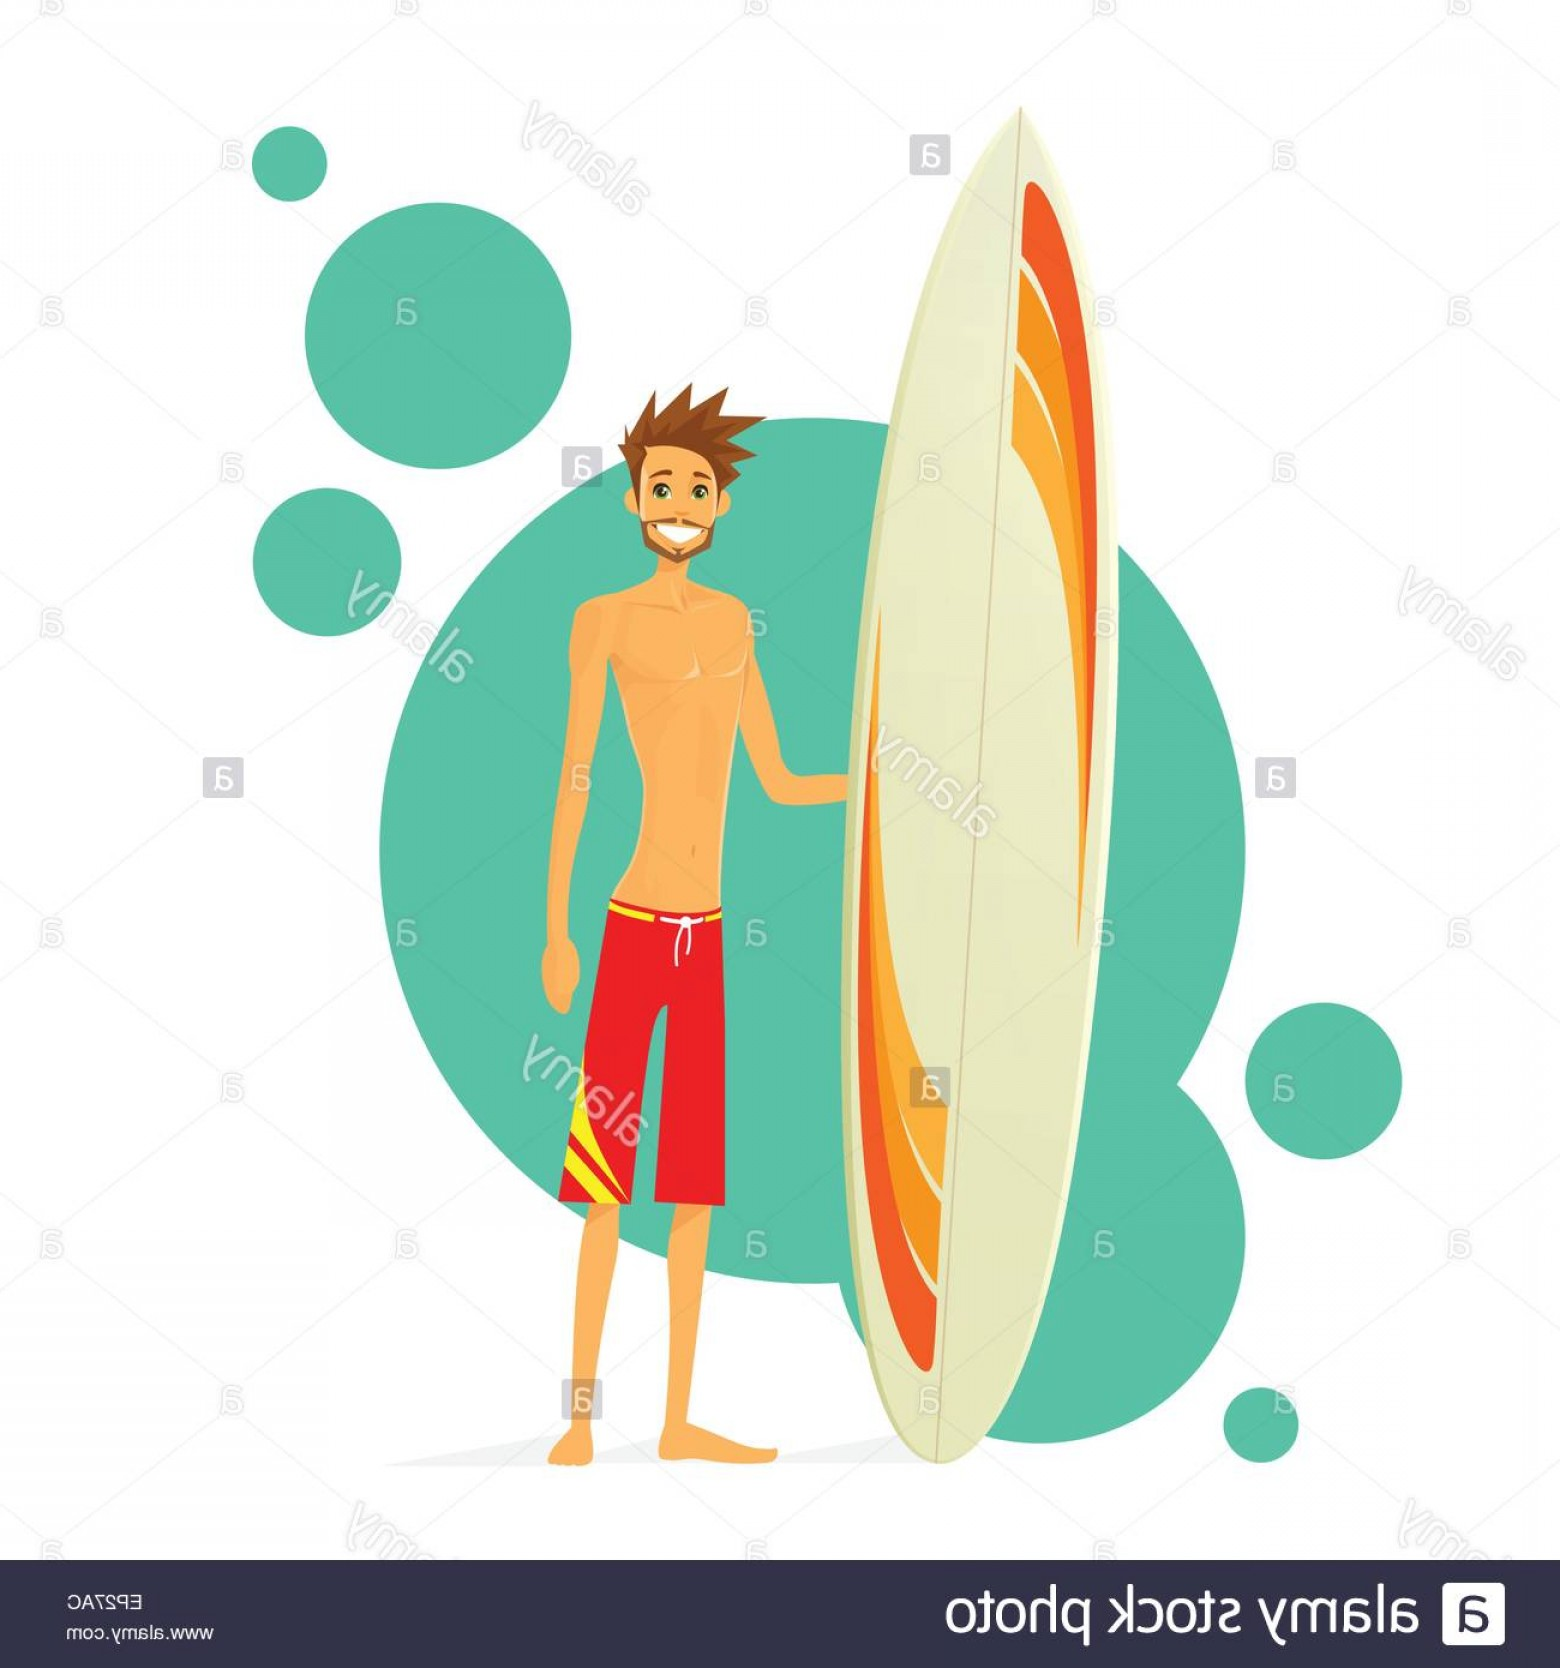 Stand Up Paddle Boarder Vector: Stock Photo Surfer Man With Surfing Board Flat Icon